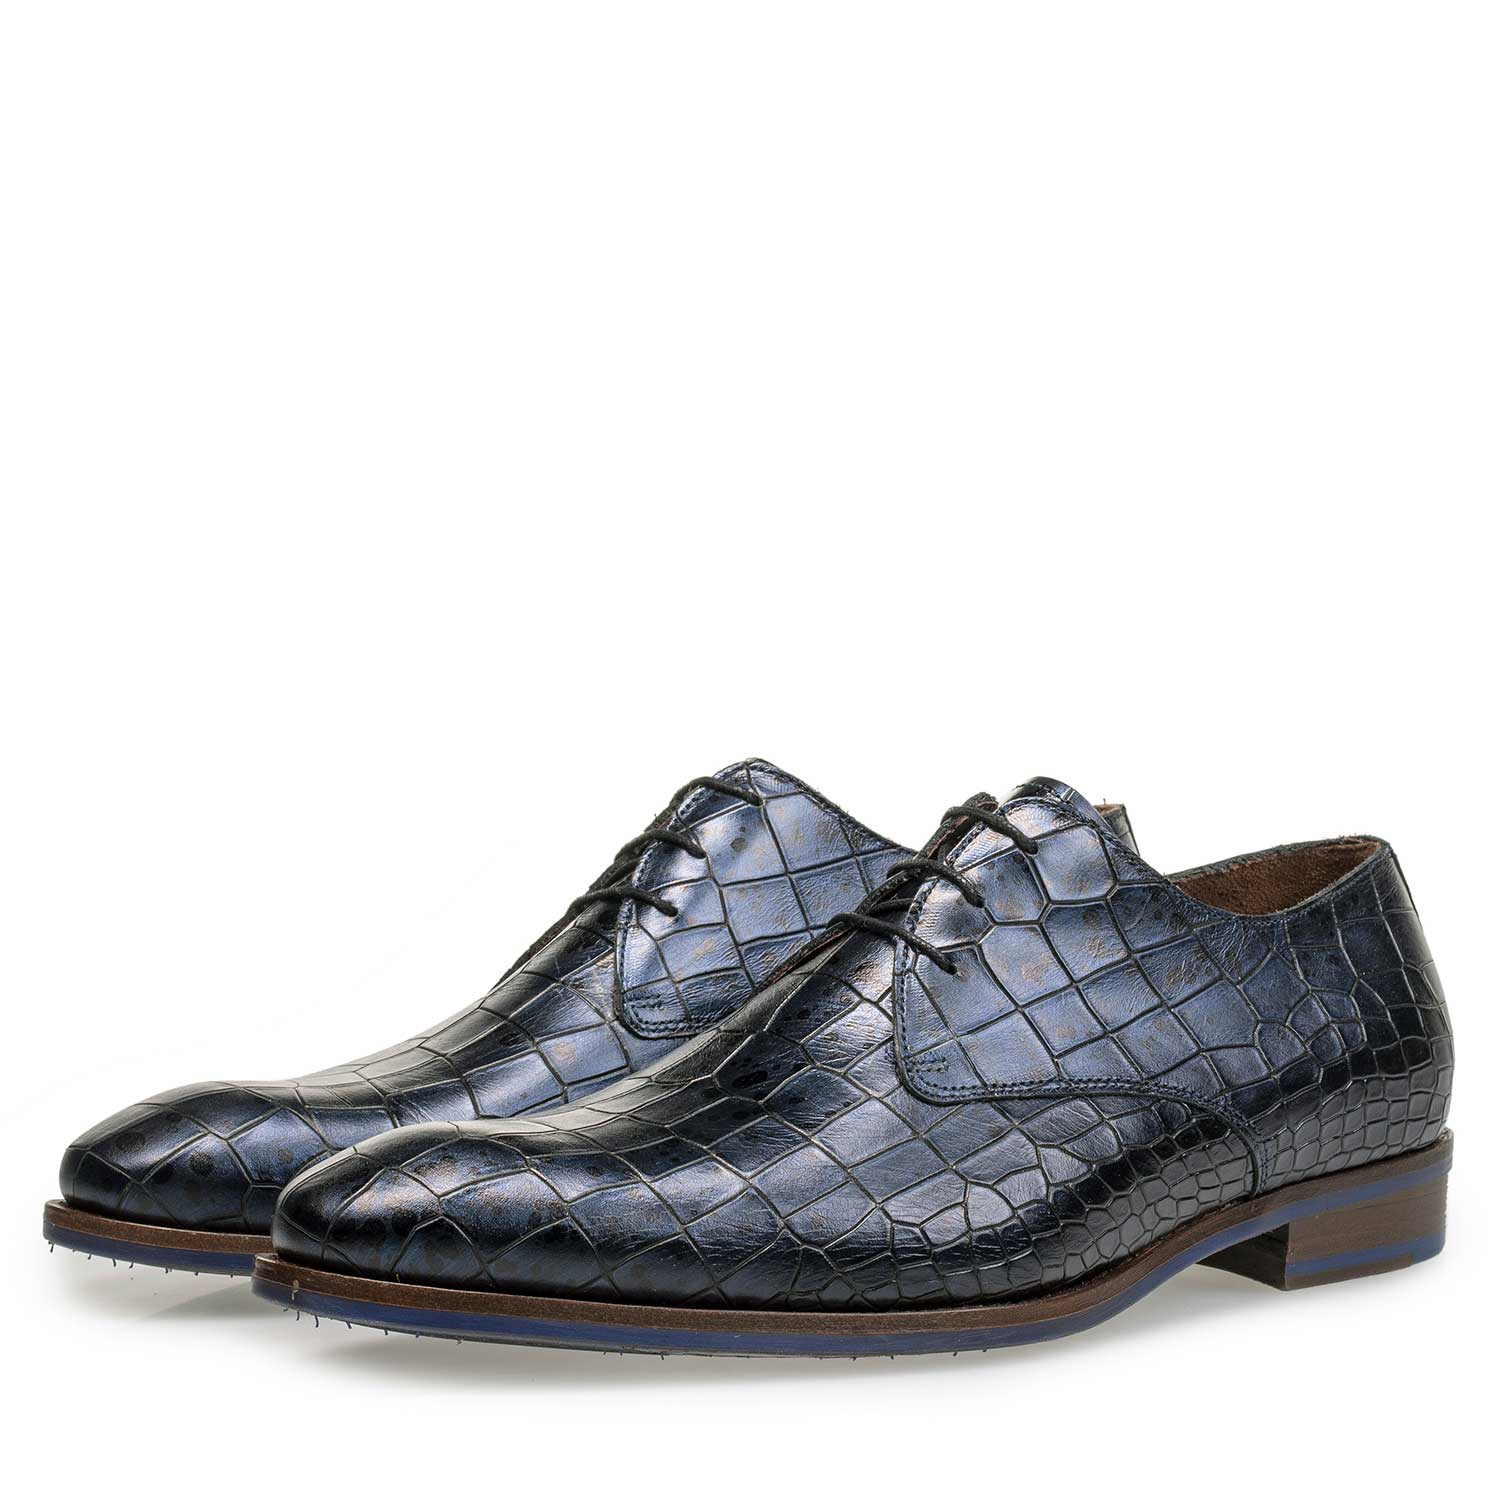 18067/02 - Blue calf's leather lace shoe with croco print